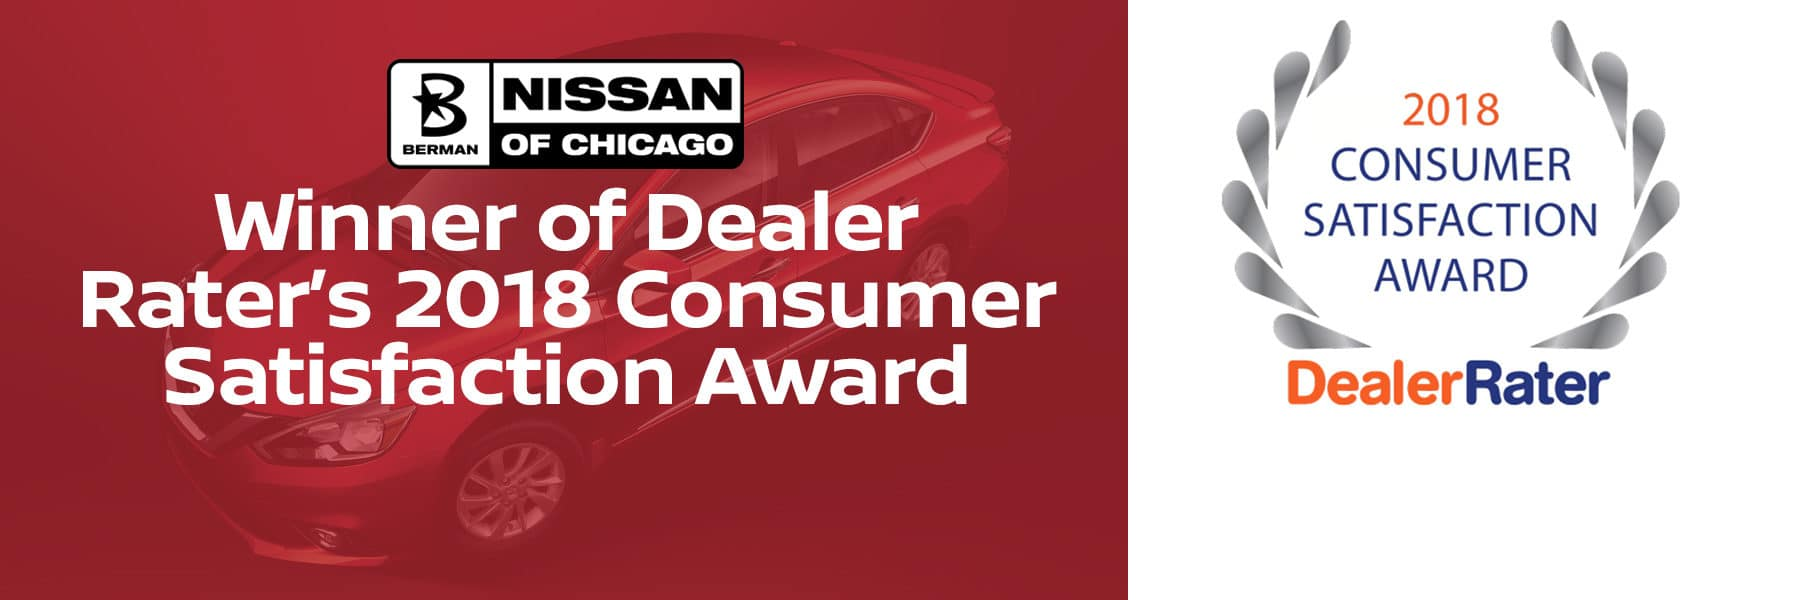 Berman Nissan of Chicago wins DealerRater's 2018 Consumer Satisfaction Award